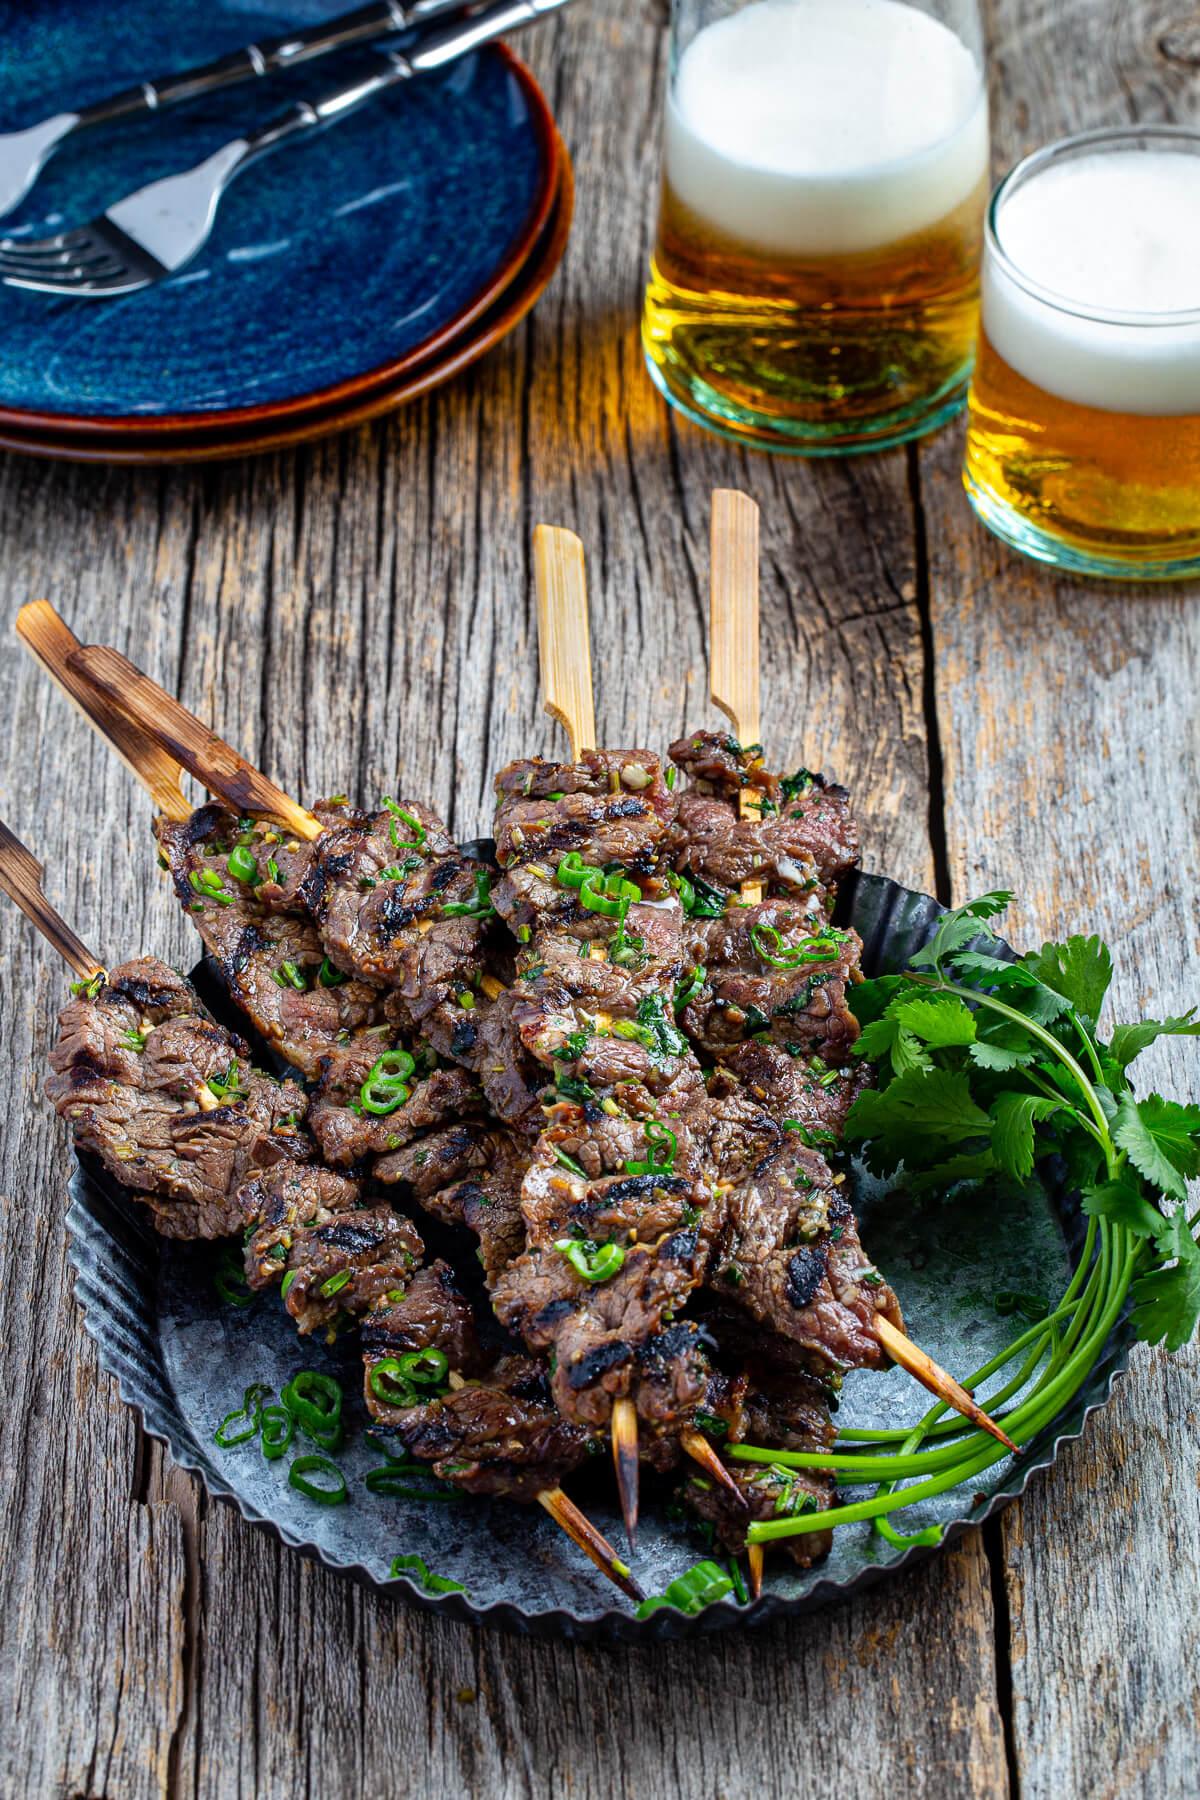 Skewers of grilled beef on a metal serving dish served next to glasses of beer.